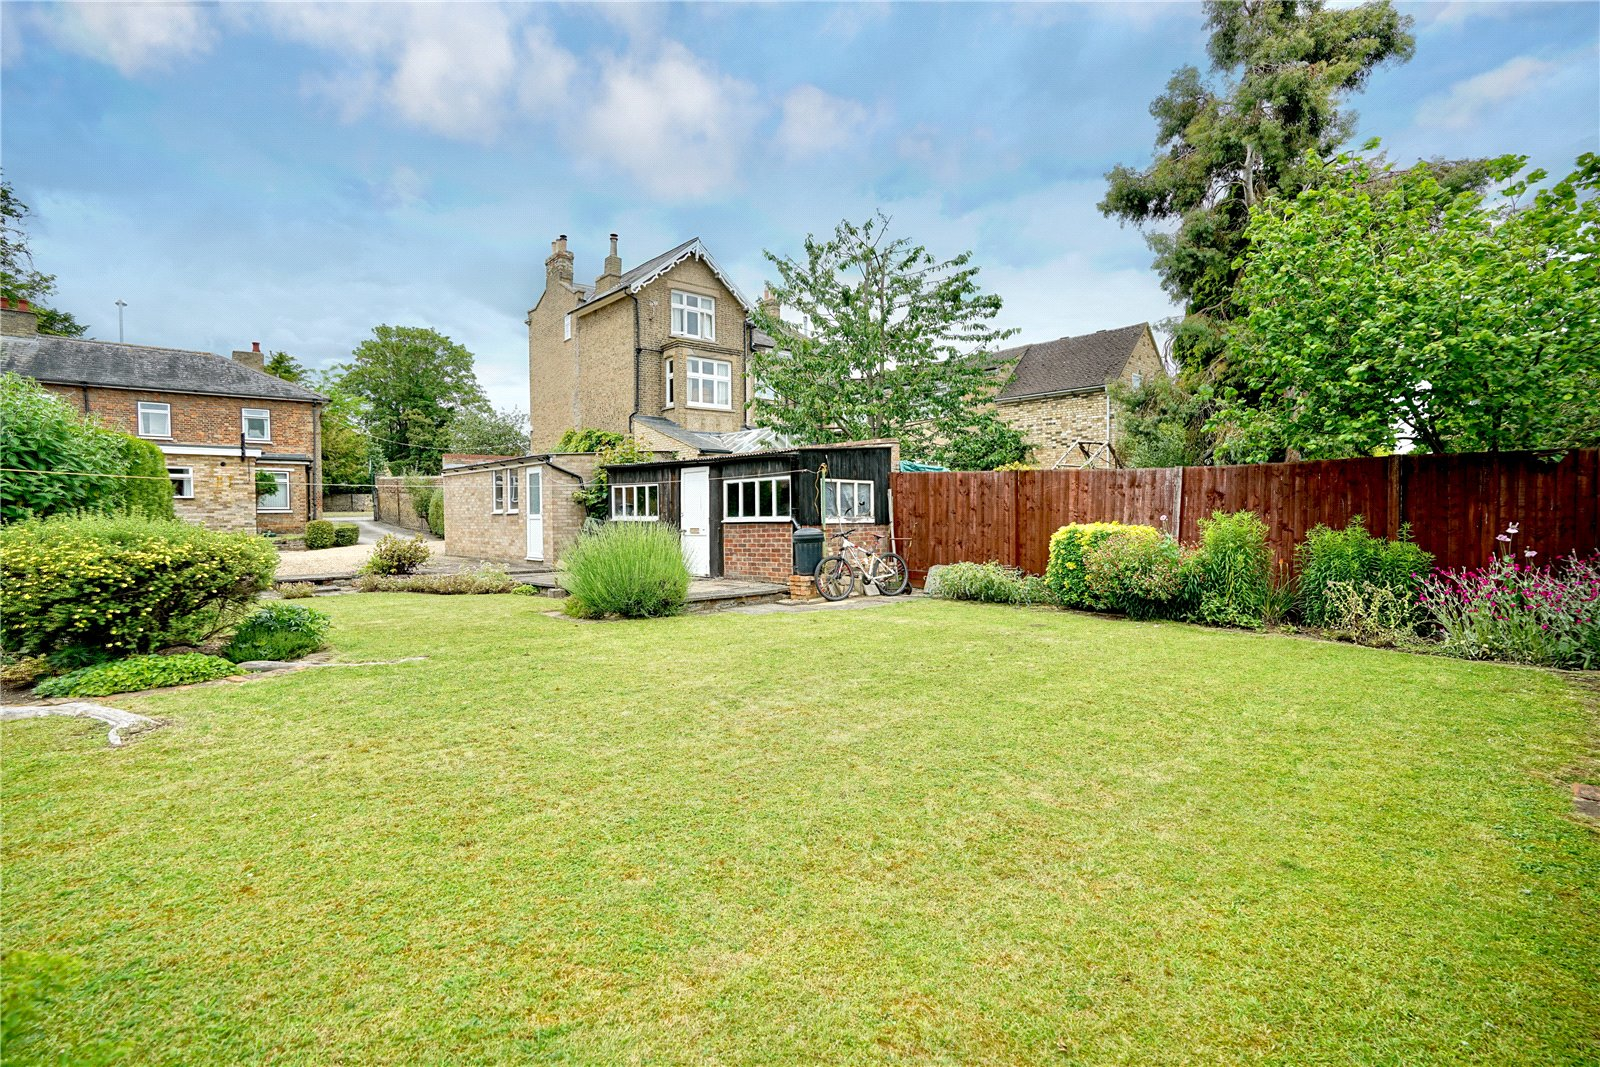 3 bed house for sale in Great North Road, Eaton Socon  - Property Image 5